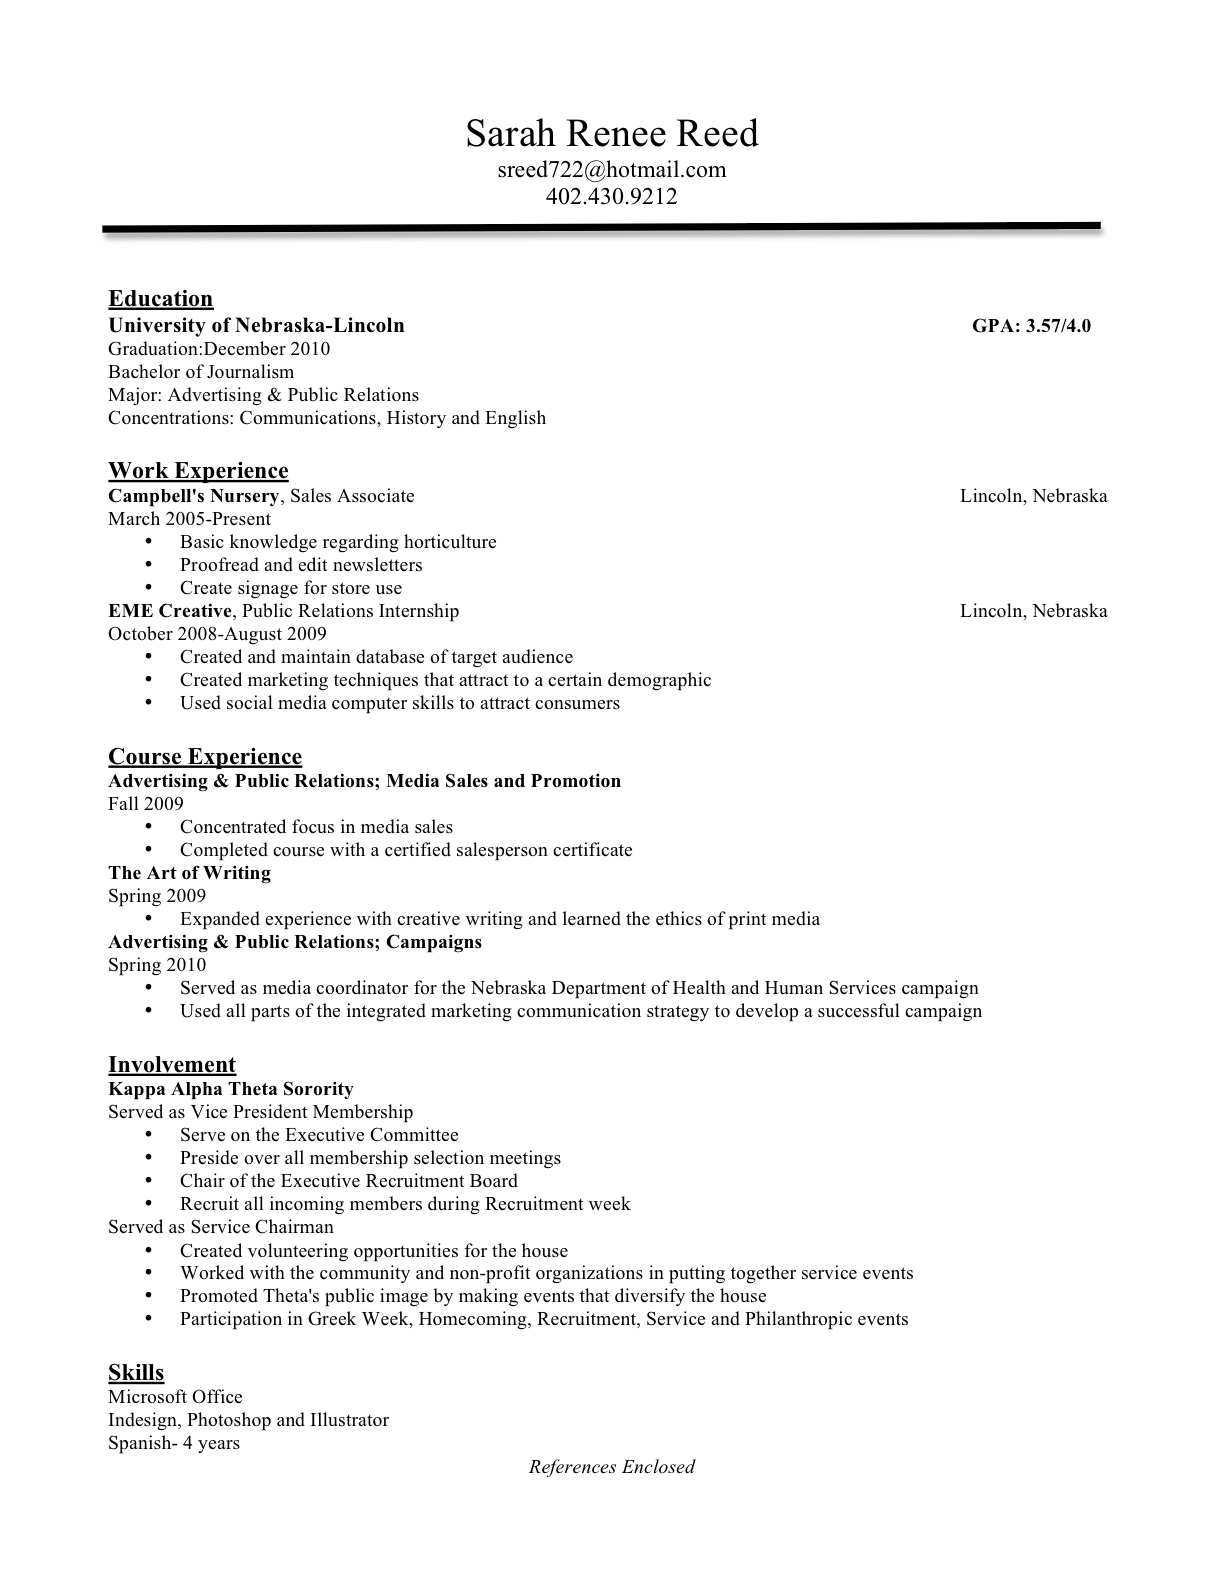 Resume Cover Letter Reference Sample SlideShare  References Resume